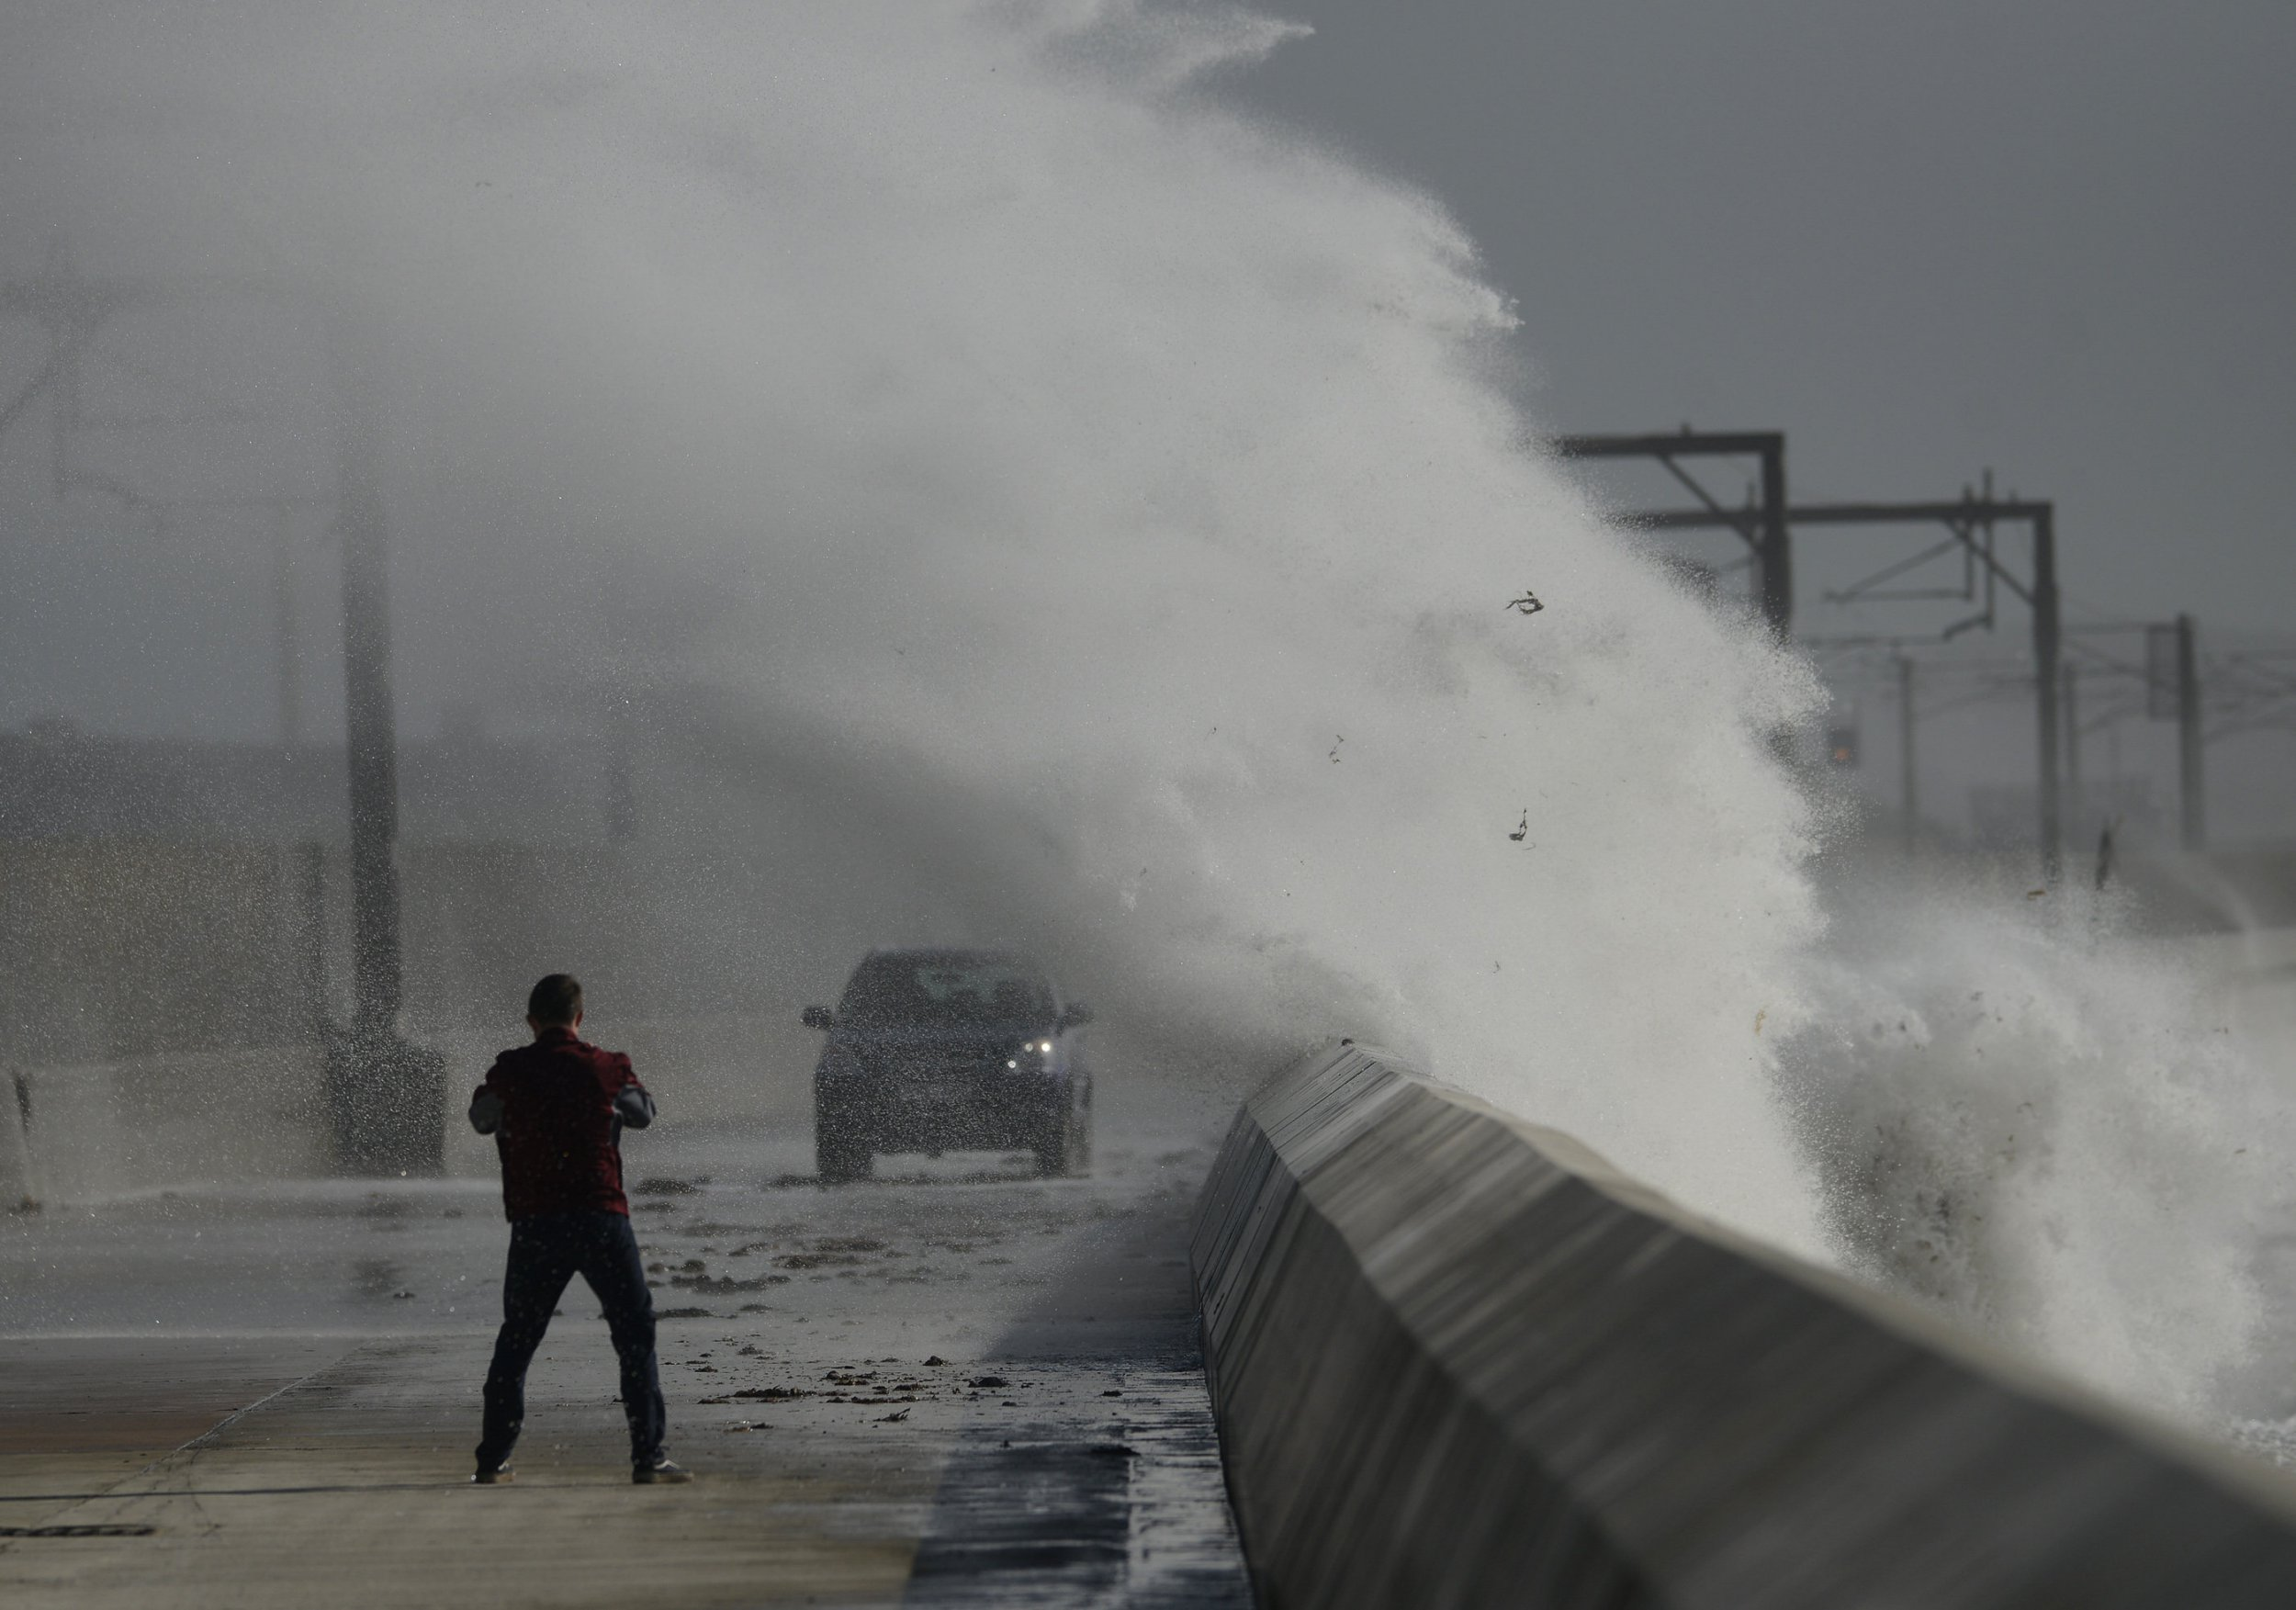 Storm Ali batters the town of Saltcoats, Ayrshire, Scotland, as high winds and rain are expected throughout Scotland over lunchtime. September 19, 2018.